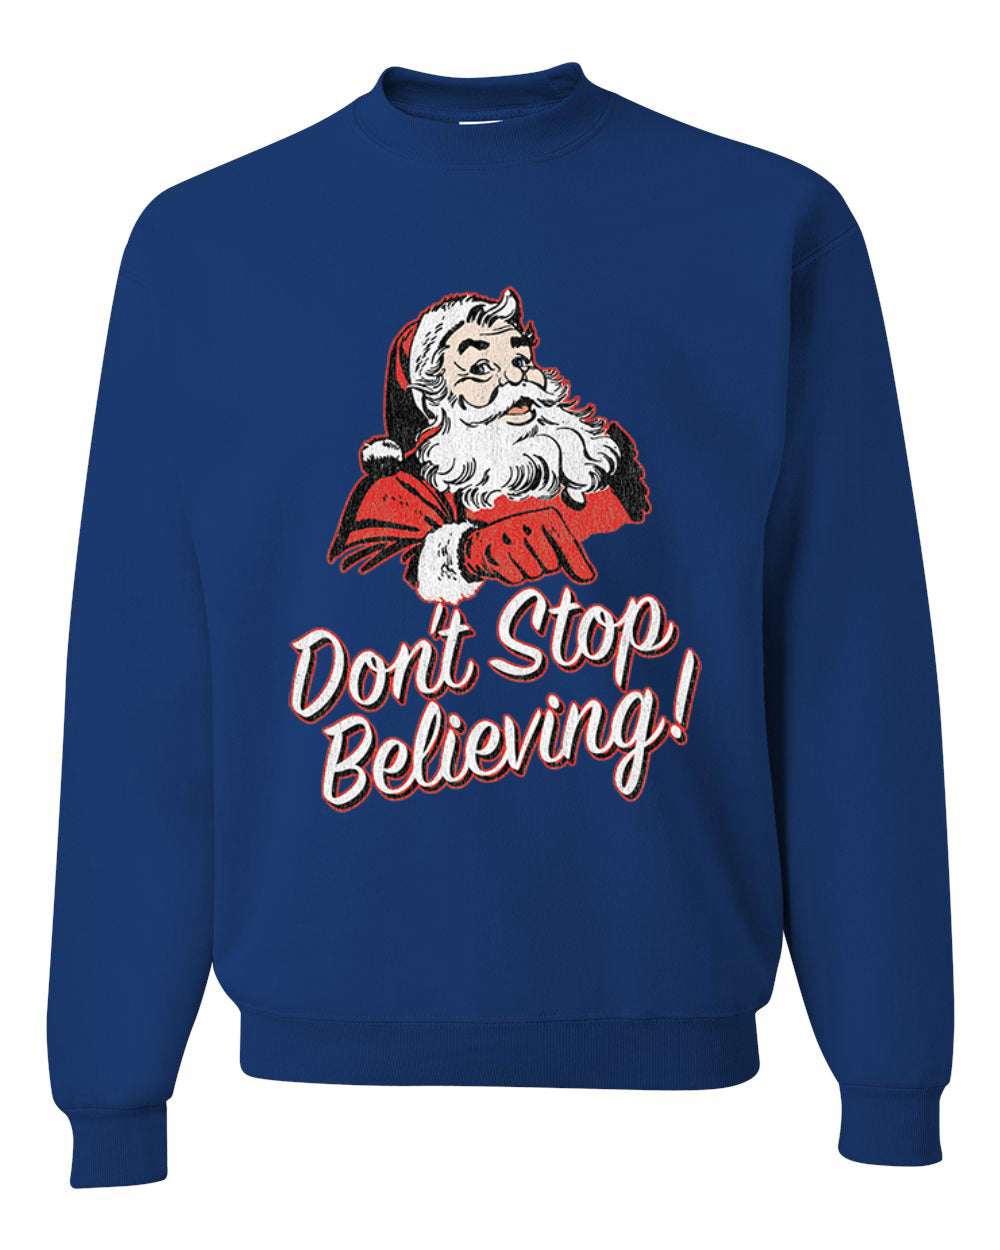 Santa Don't Stop Believing Christmas Unisex Crewneck Graphic Sweatshirt